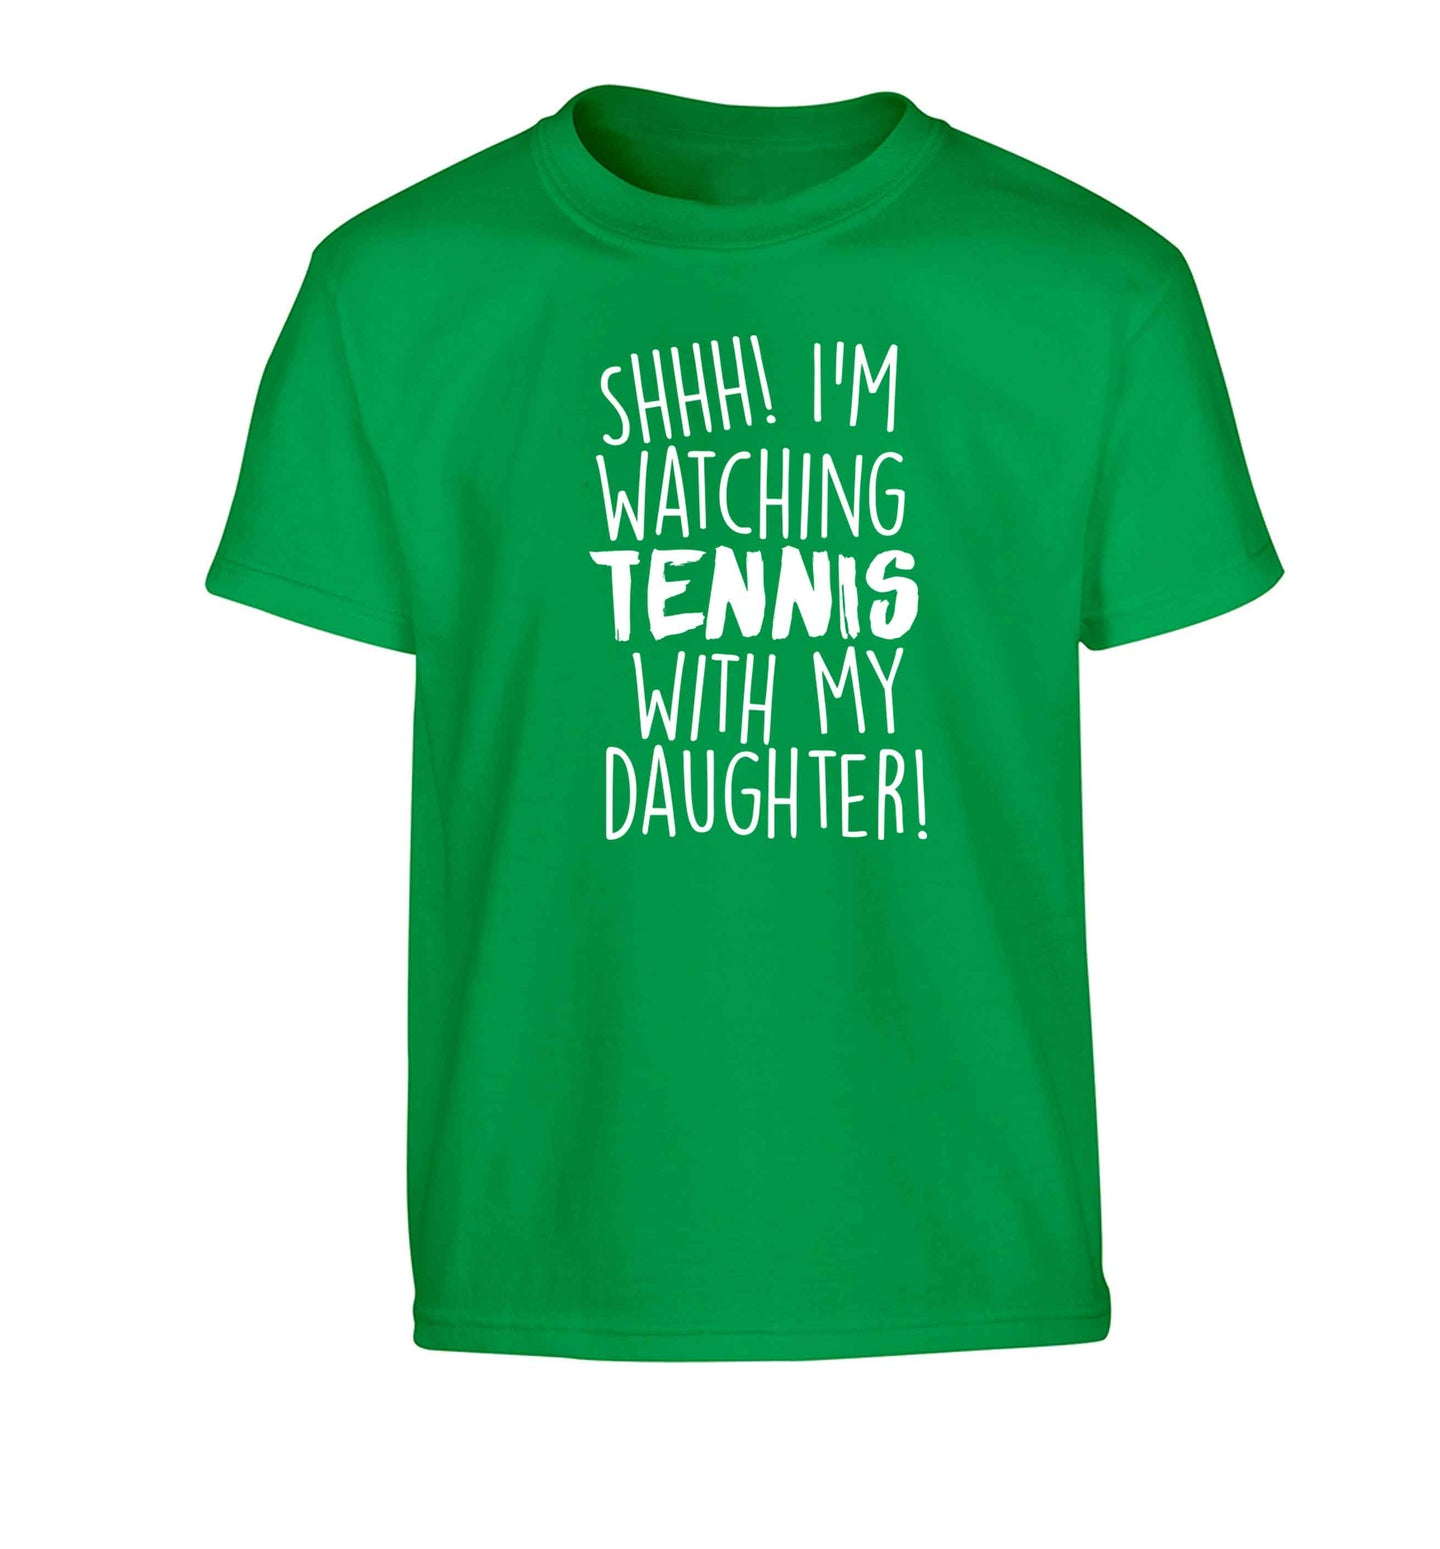 Shh! I'm watching tennis with my daughter! Children's green Tshirt 12-13 Years